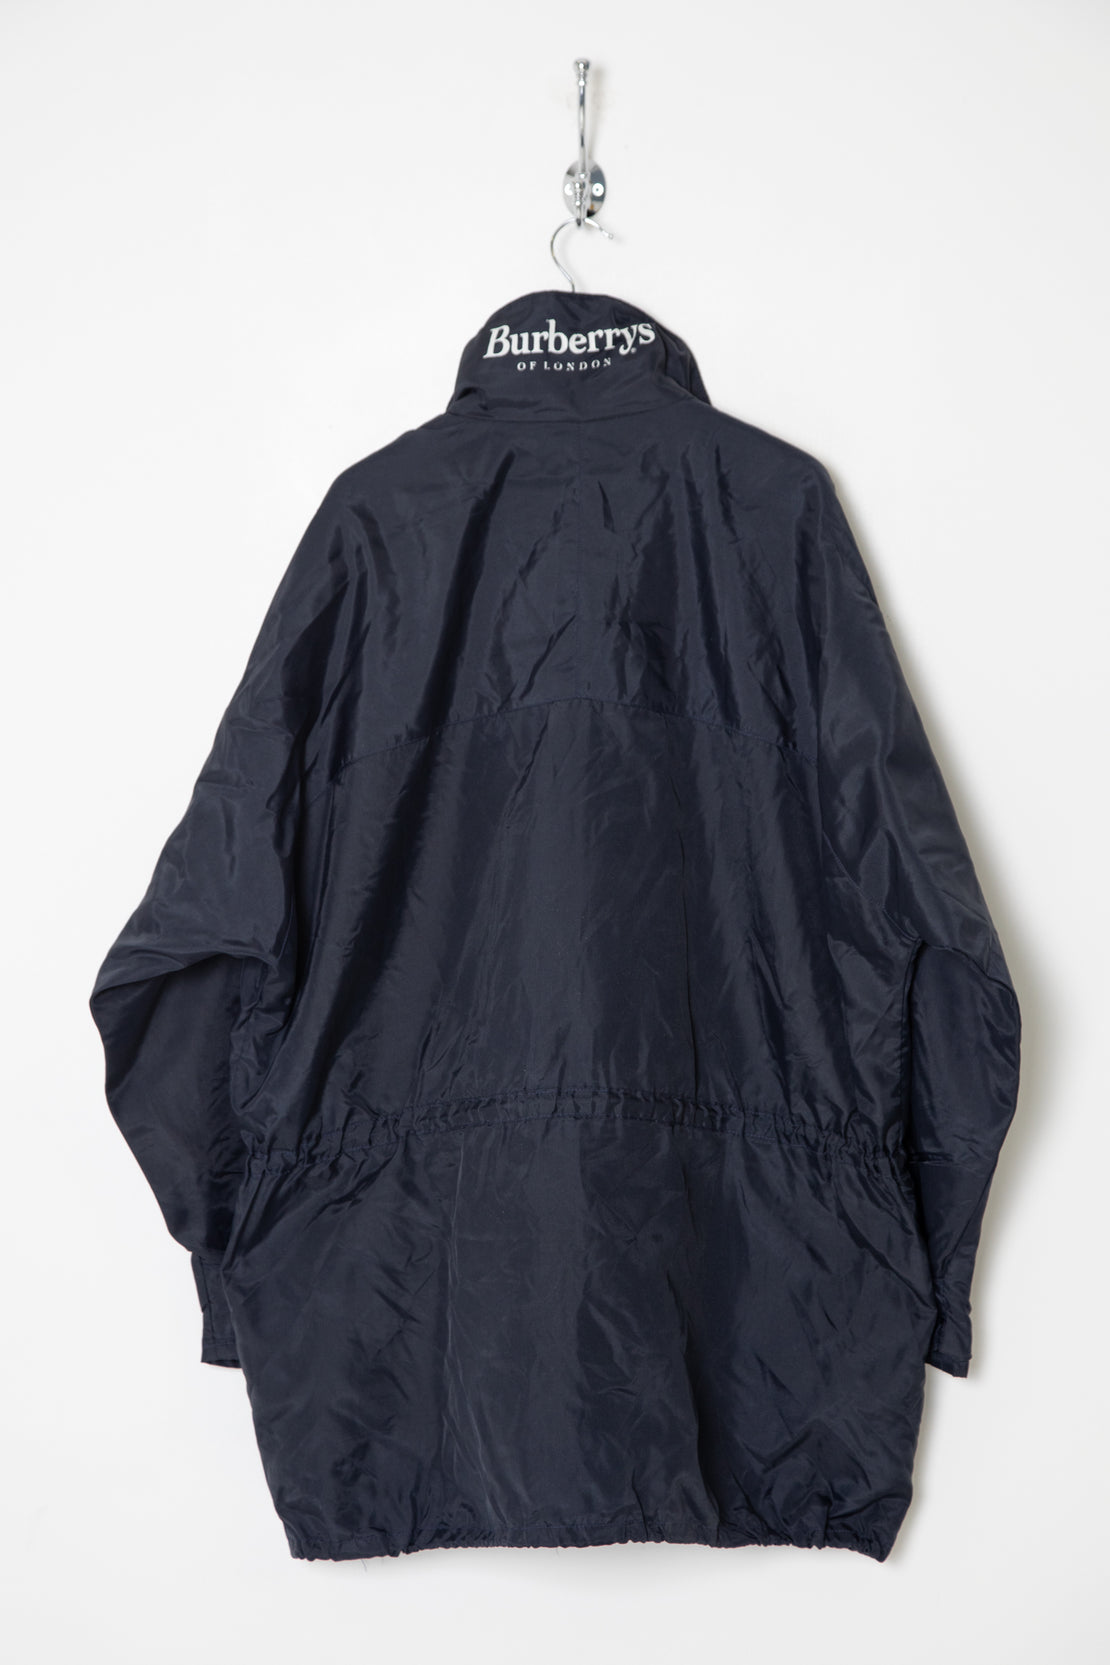 Burberry Jacket (XXL)